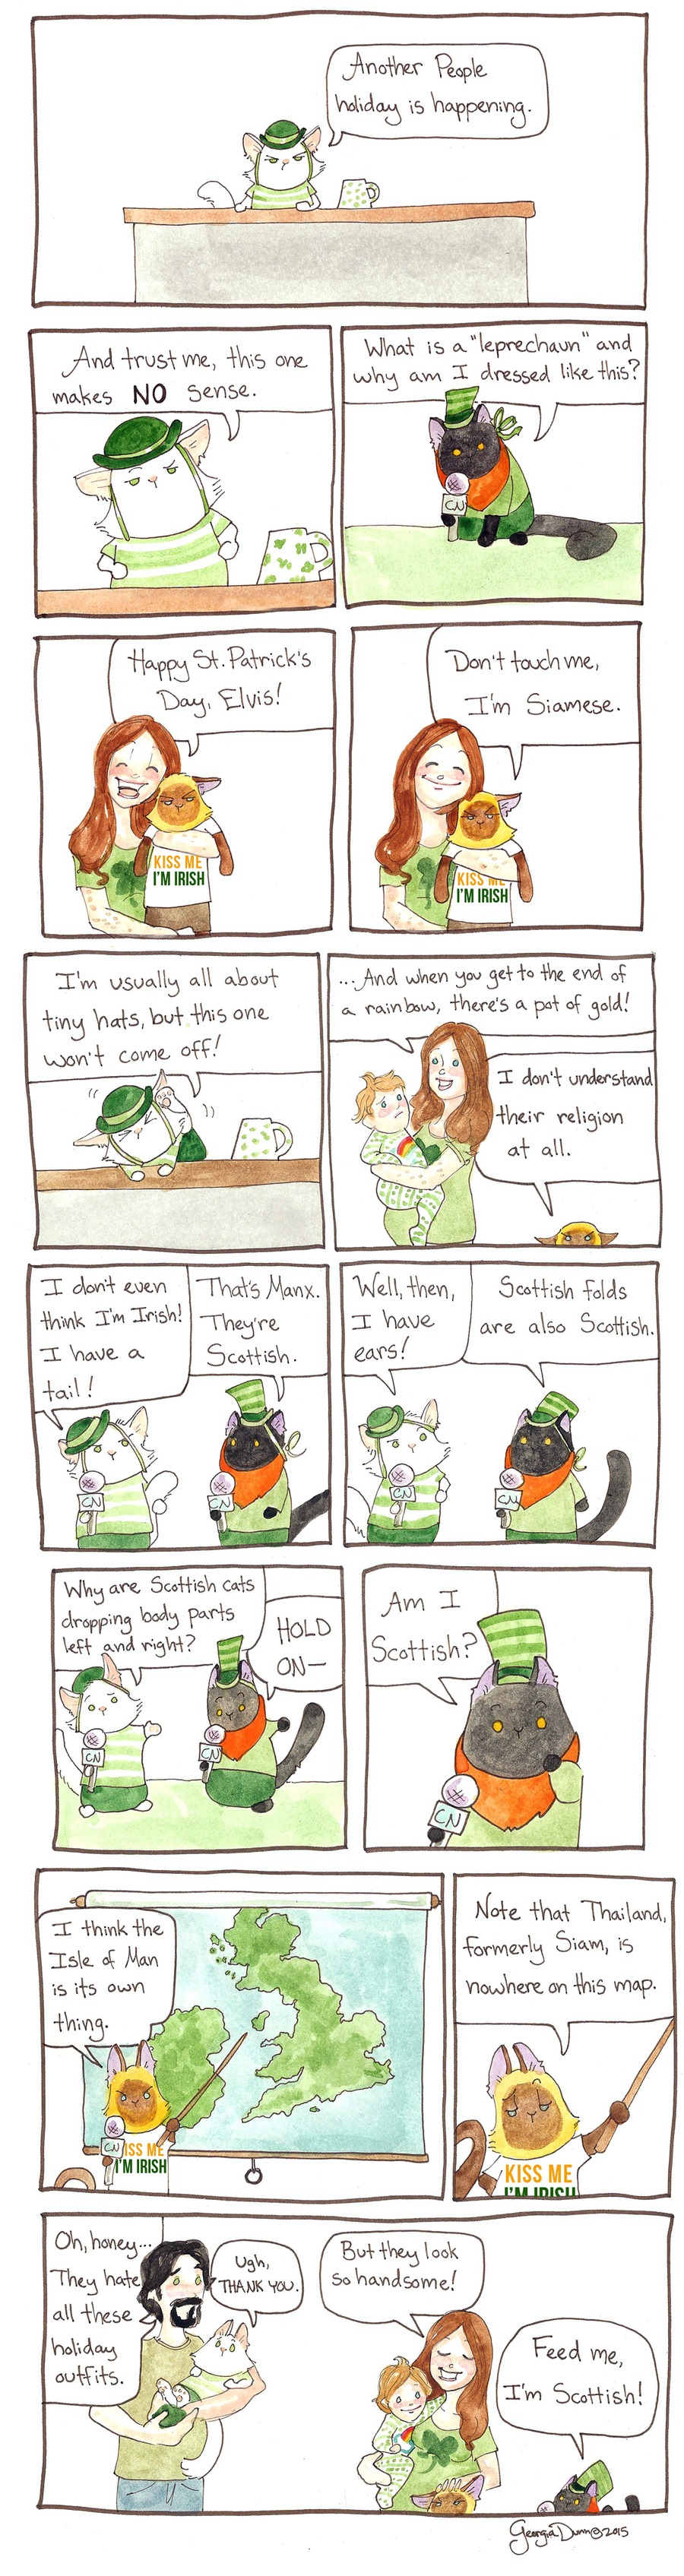 """Lupin:  Another People holiday is happening.  And trust me, this one makes no sense. Puck:  What is a """"leprechaun"""" and why am I dressed like this? Woman:  Happy St. Patrick's Day, Elvis! Elvis:  Don't touch me. I'm Siamese. Lupin:  I'm usually all about tiny hats, but this one won't come off! Woman:  ...And when you get to the end of a rainbow, there's a pot of gold! Elvis:  I don't understand their religion at all. Lupin:  I don't even think I'm Irish! I have a tail! Puck:  That's Manx. They're Scottish. Lupin:  Well, then, I have ears! Puck:  Scottish folds are also Scottish. Lupin:  Why are Scottish cats dropping body parts left and right? Puck:  Hold on-  Am I Scottish? Elvis:  I think the Isle of Man is it's own thing.  Note that Thailand, formerly Siam, is nowhere on this map. Man:  Oh, honey, they hate all these holiday outfits. Lupin:  Ugh, thank you. Woman:  But they look so handsome! Puck:  Feed me, I'm Scottish."""